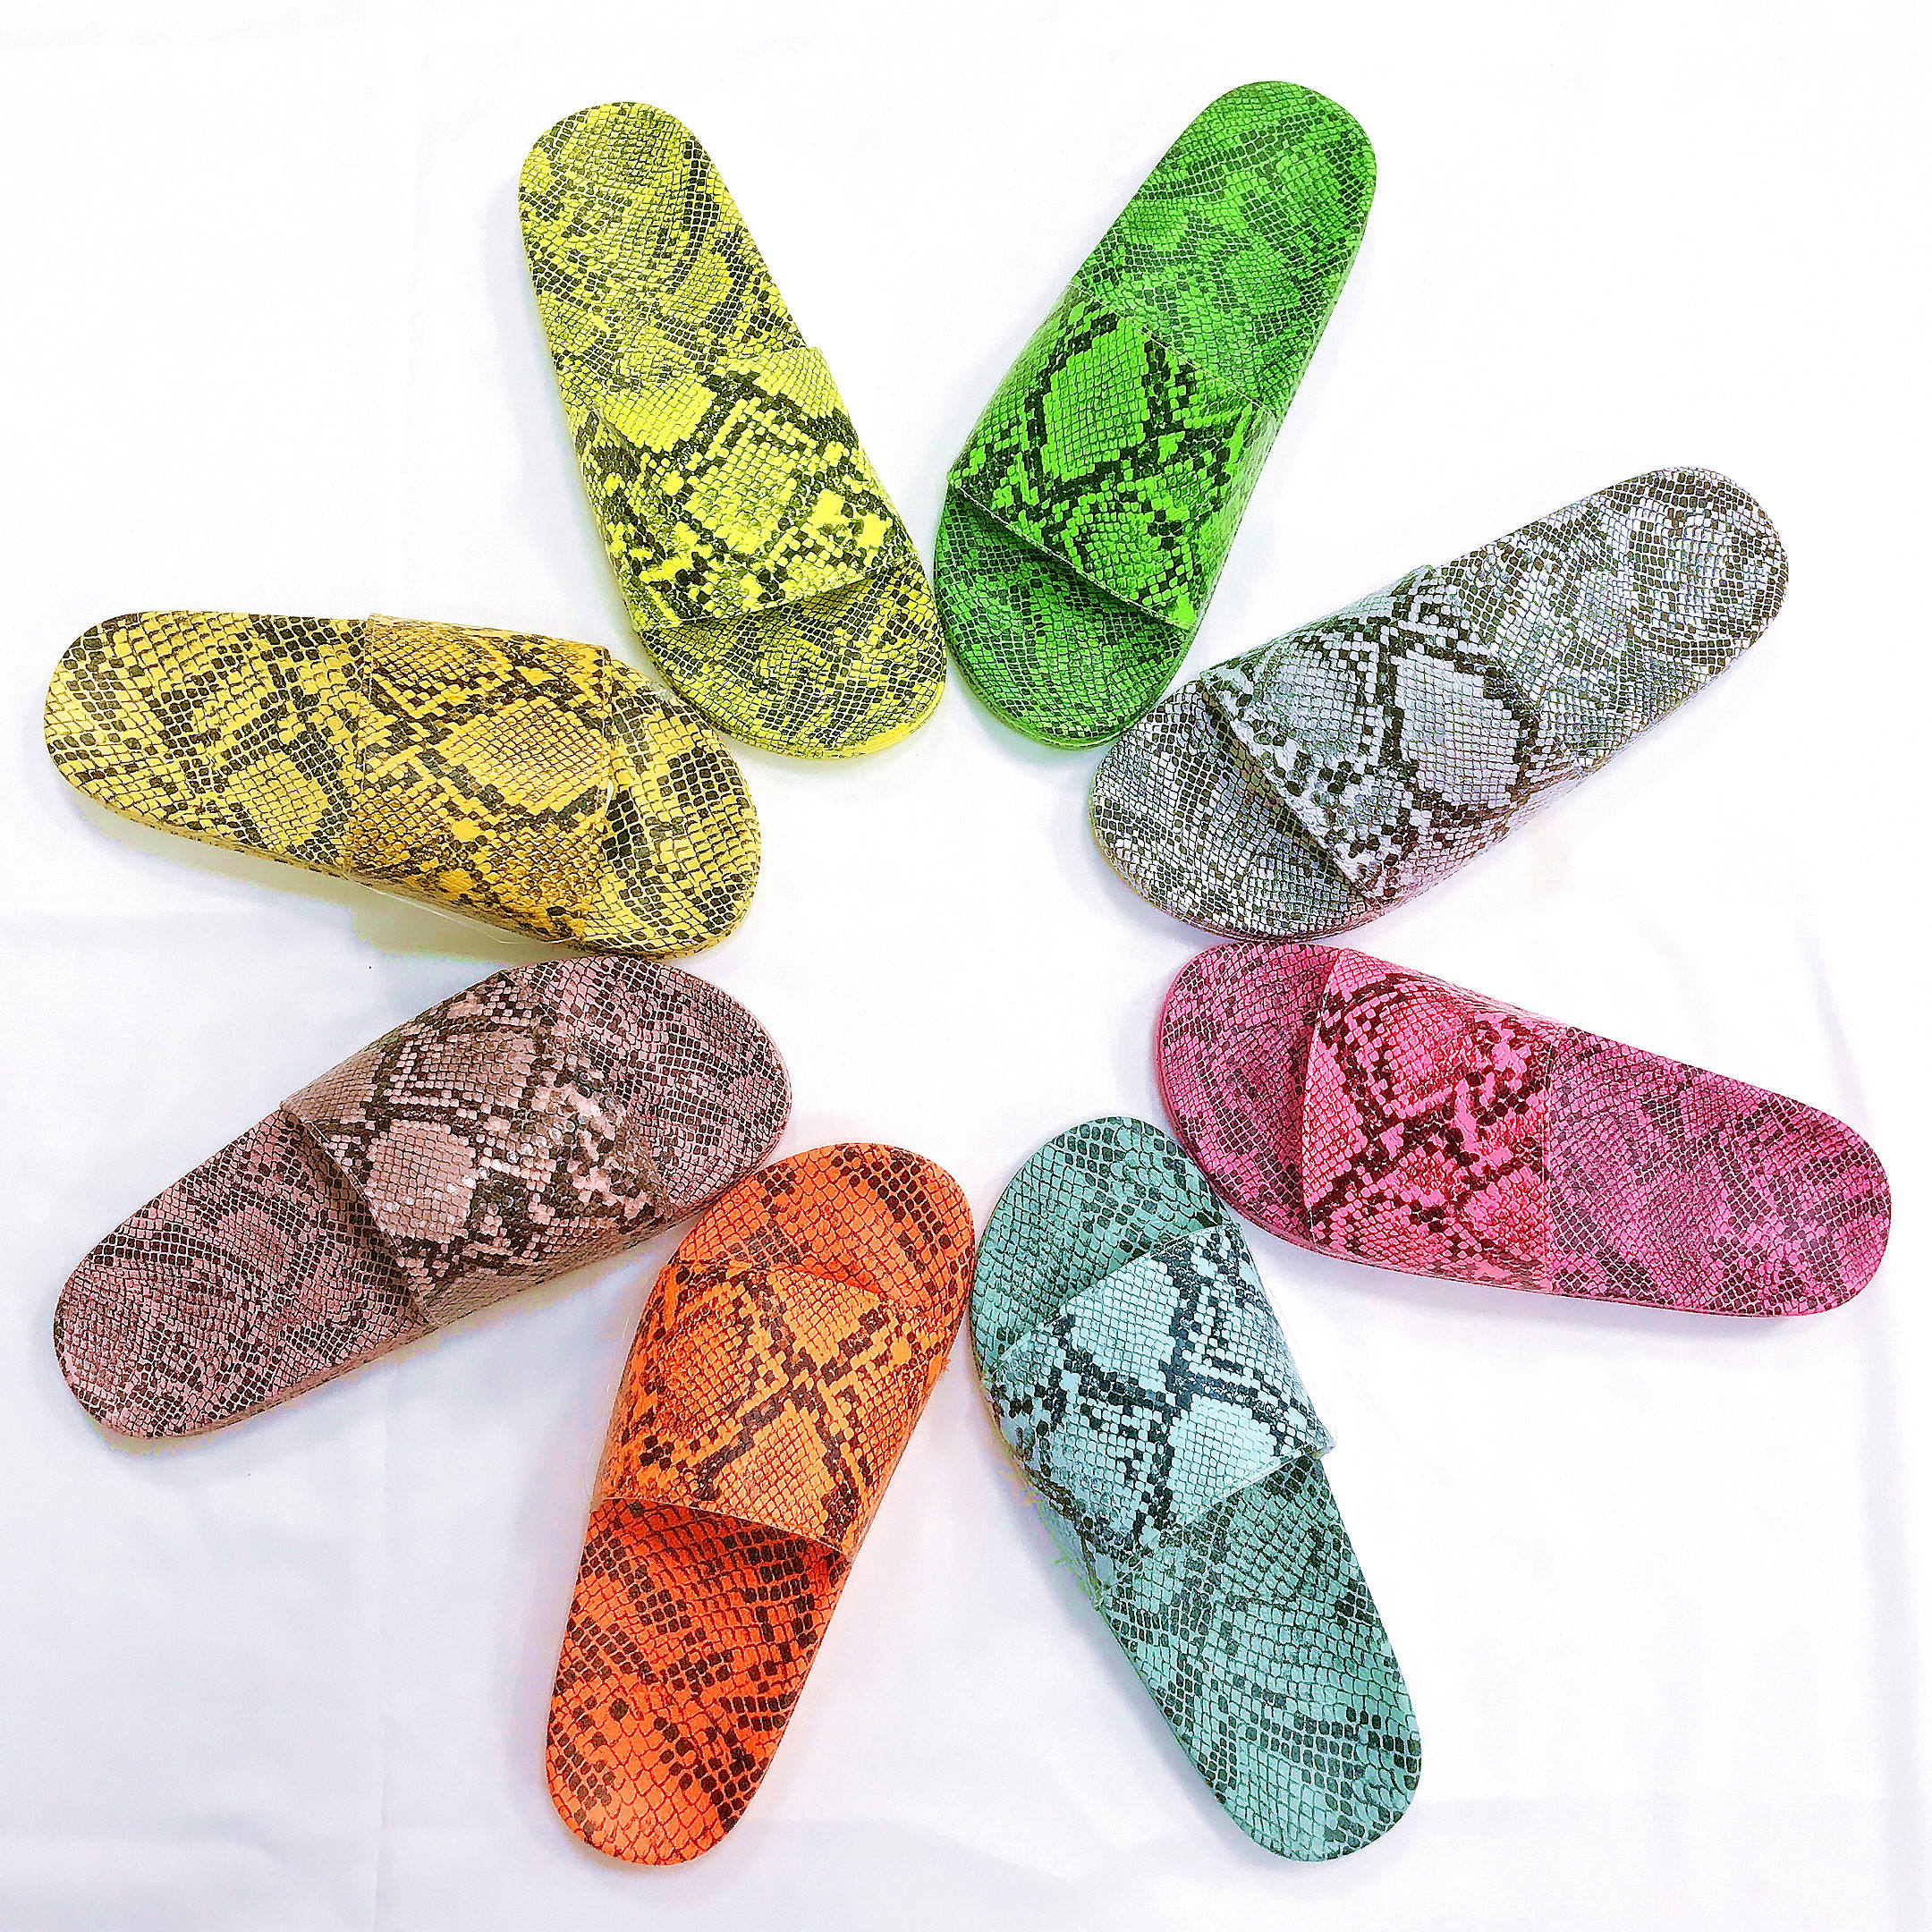 OEM ODM Summer fashion women platform sandals sexy snakeskin slides sandals outdoor slippers